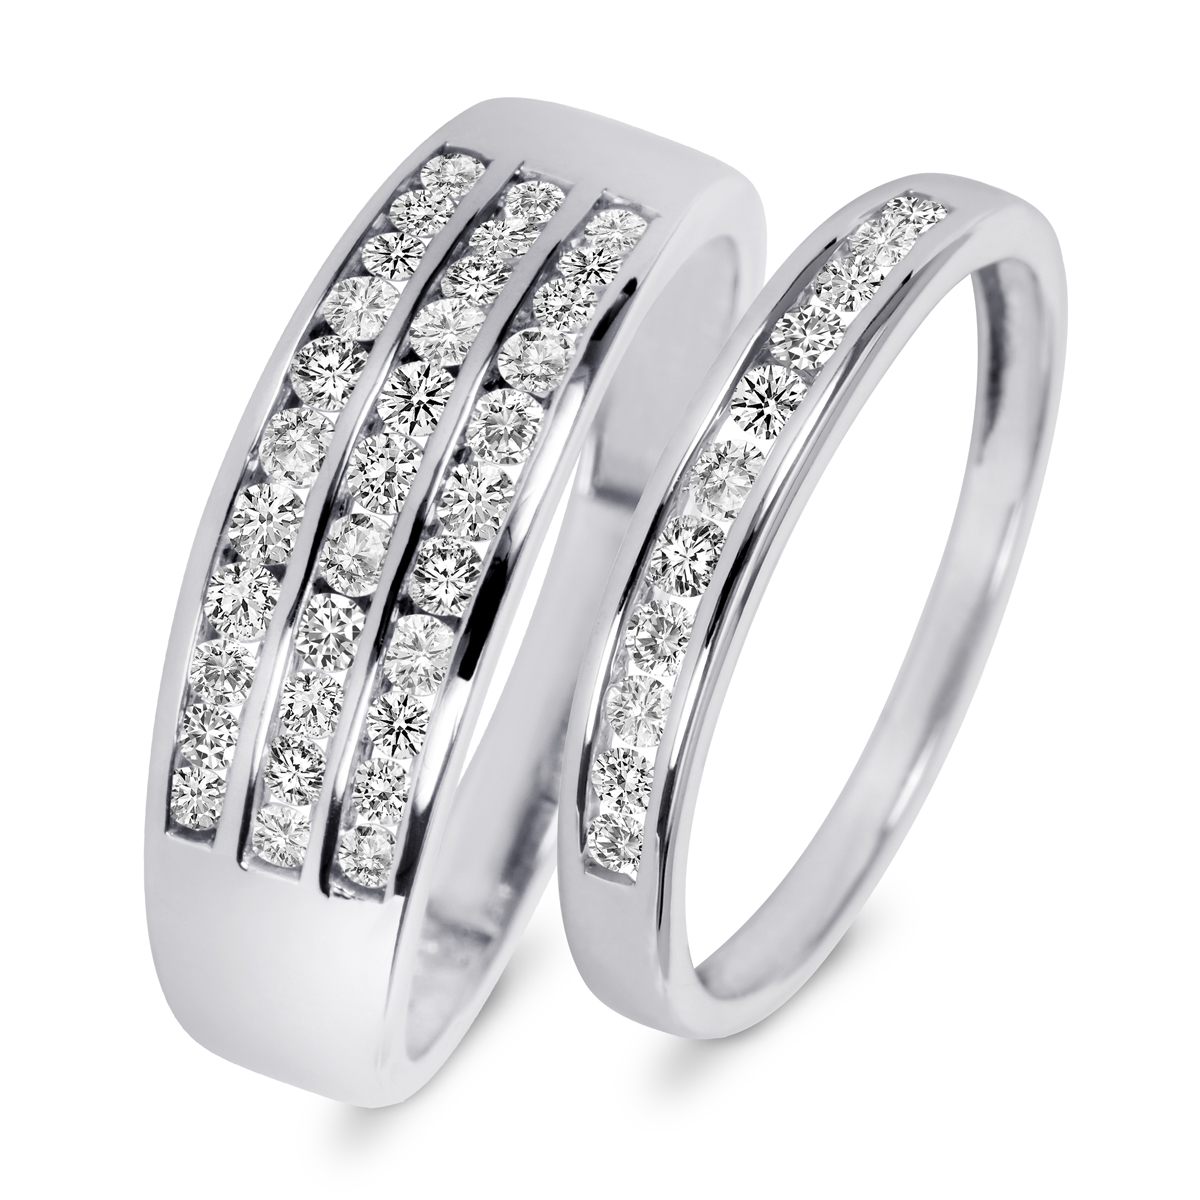 78 carat tw diamond his and hers wedding rings 10k